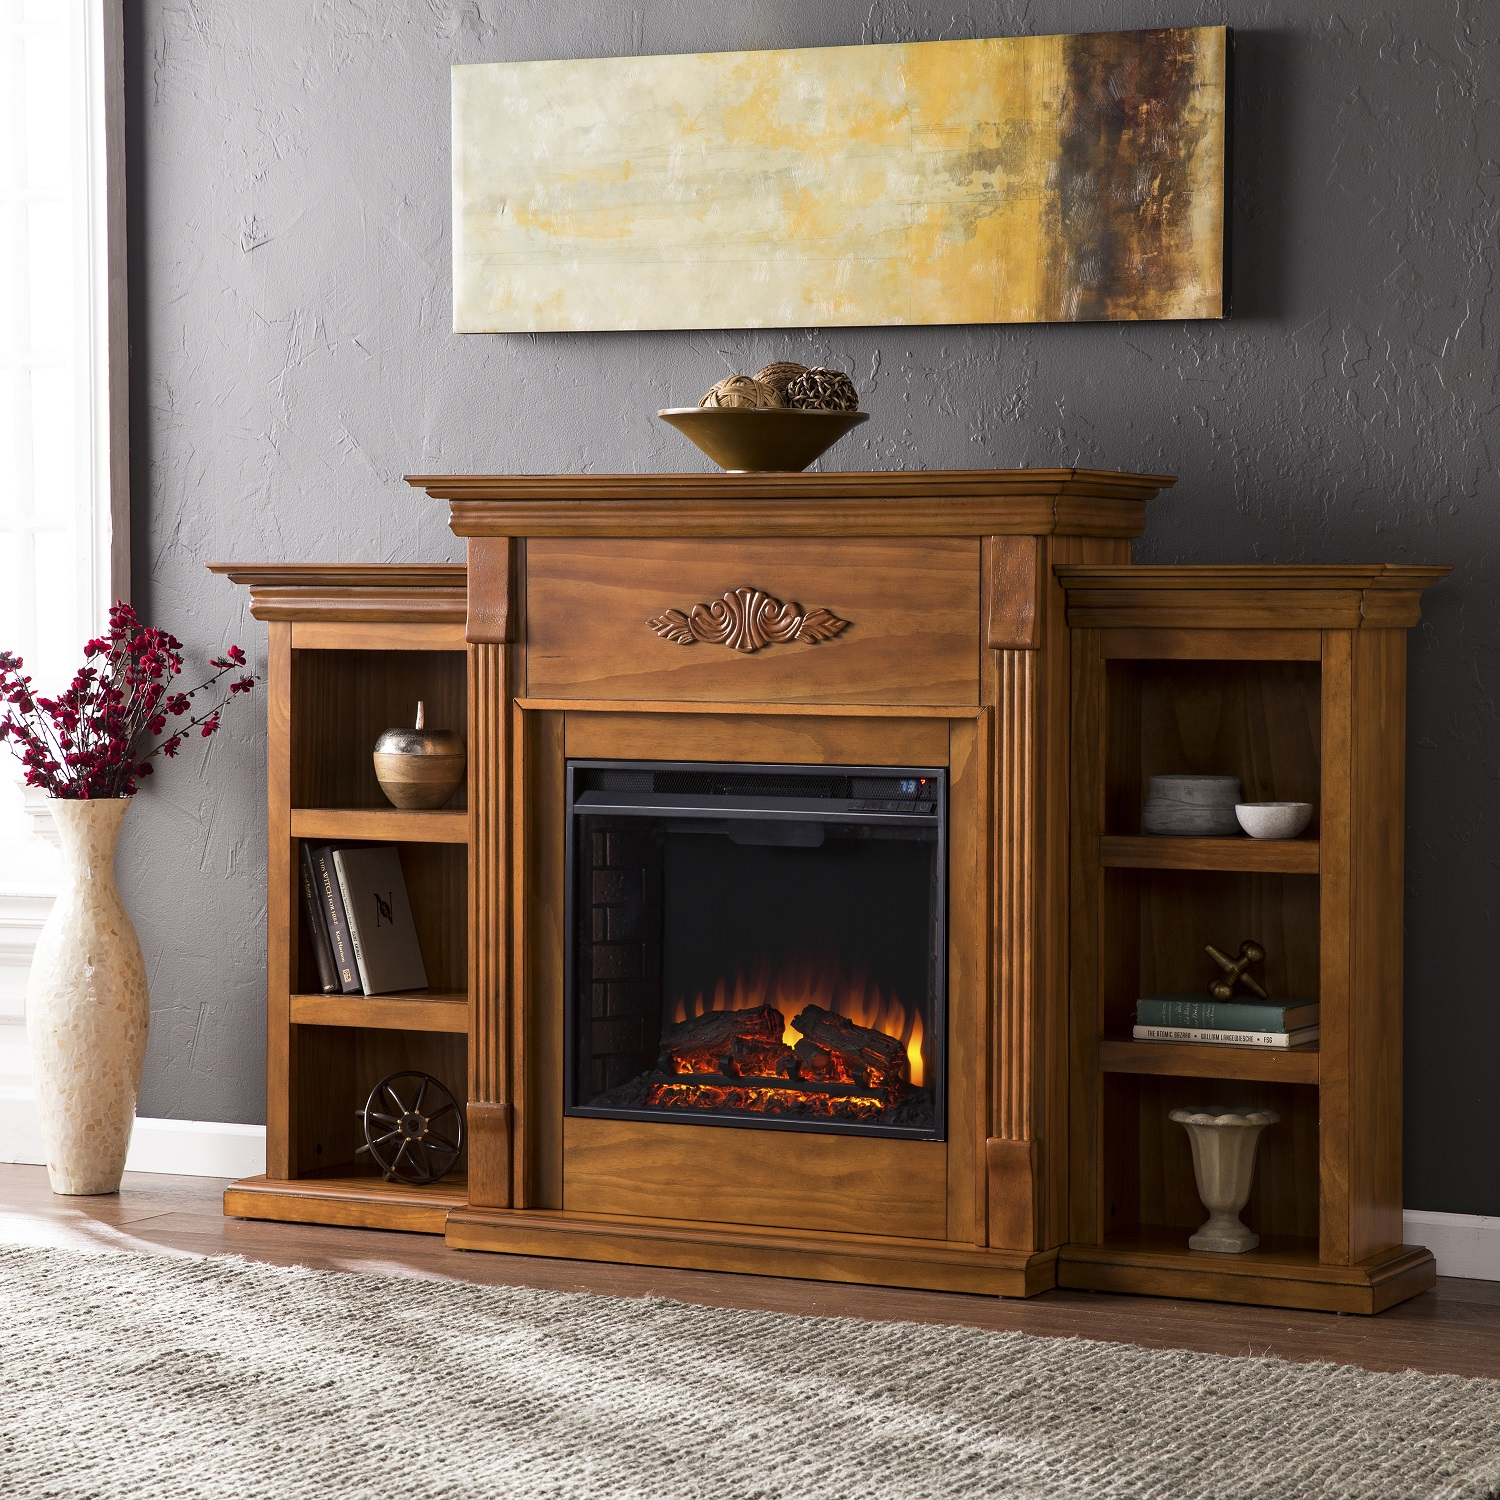 tennyson glazed pine electric fireplace w bookcases fe8543. Black Bedroom Furniture Sets. Home Design Ideas